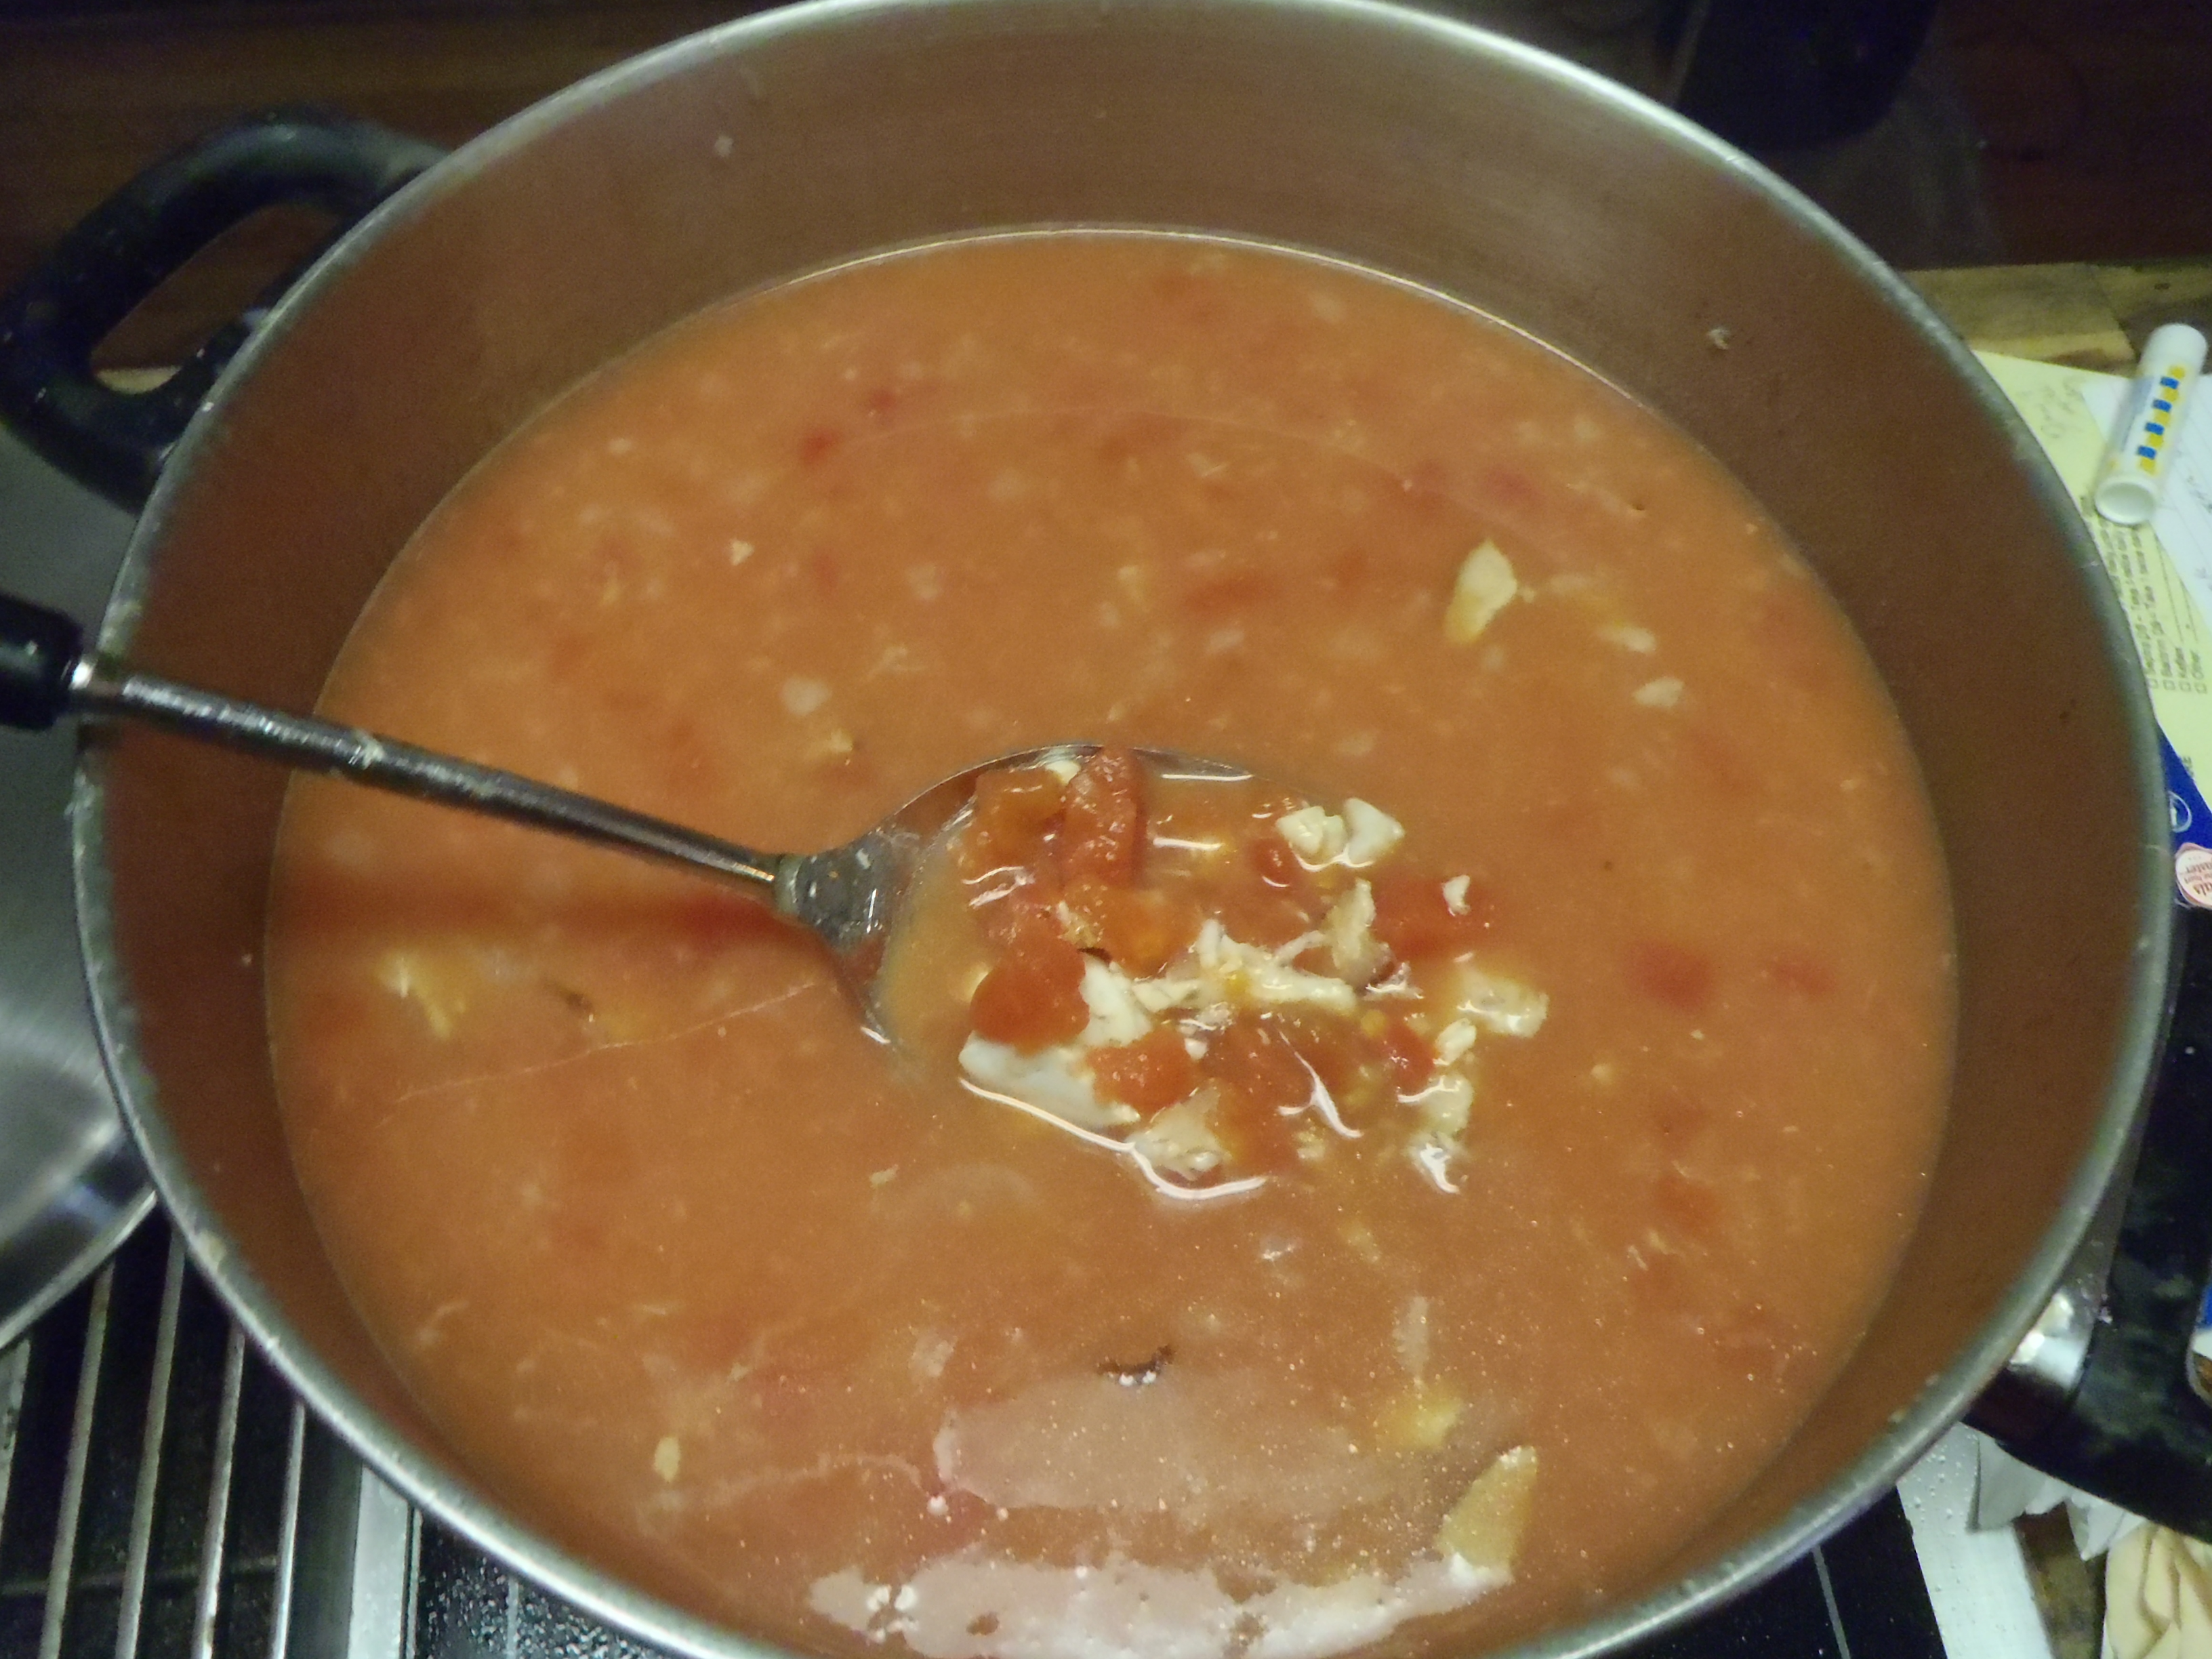 Simmer for about an hour